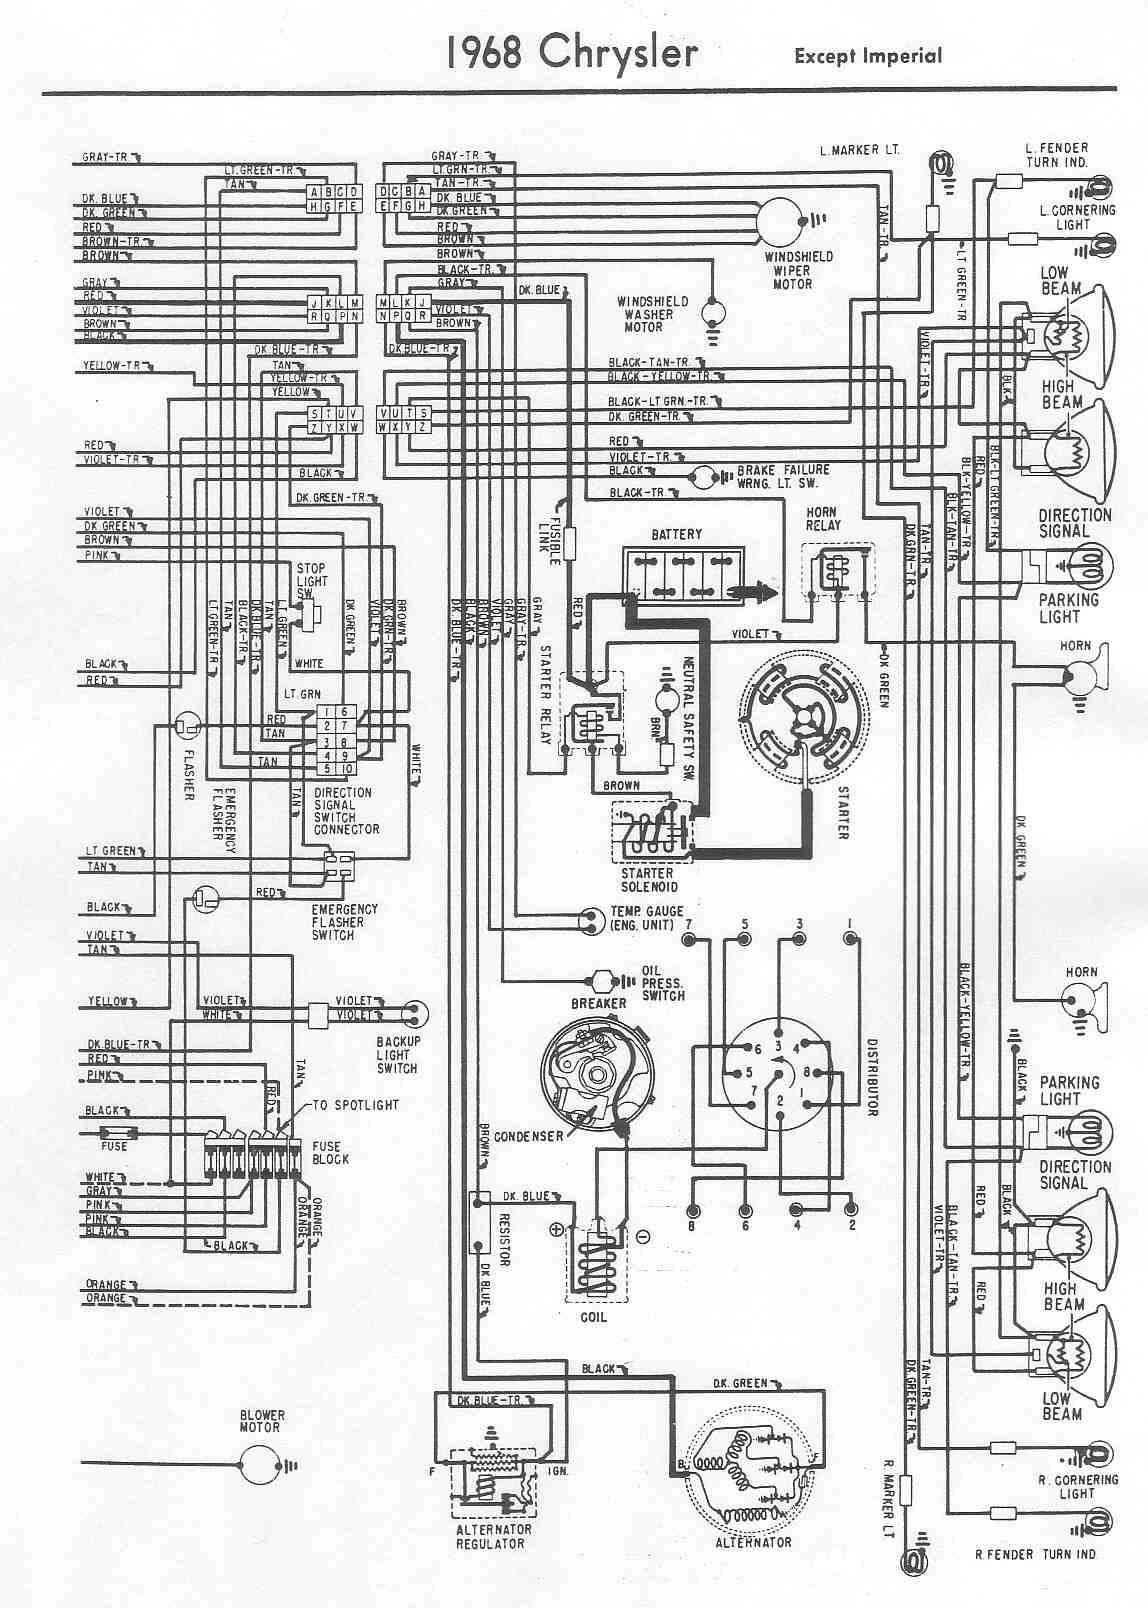 m1008 technical manual on willys wiring diagram, m12 wiring diagram,  blazer wiring diagram,